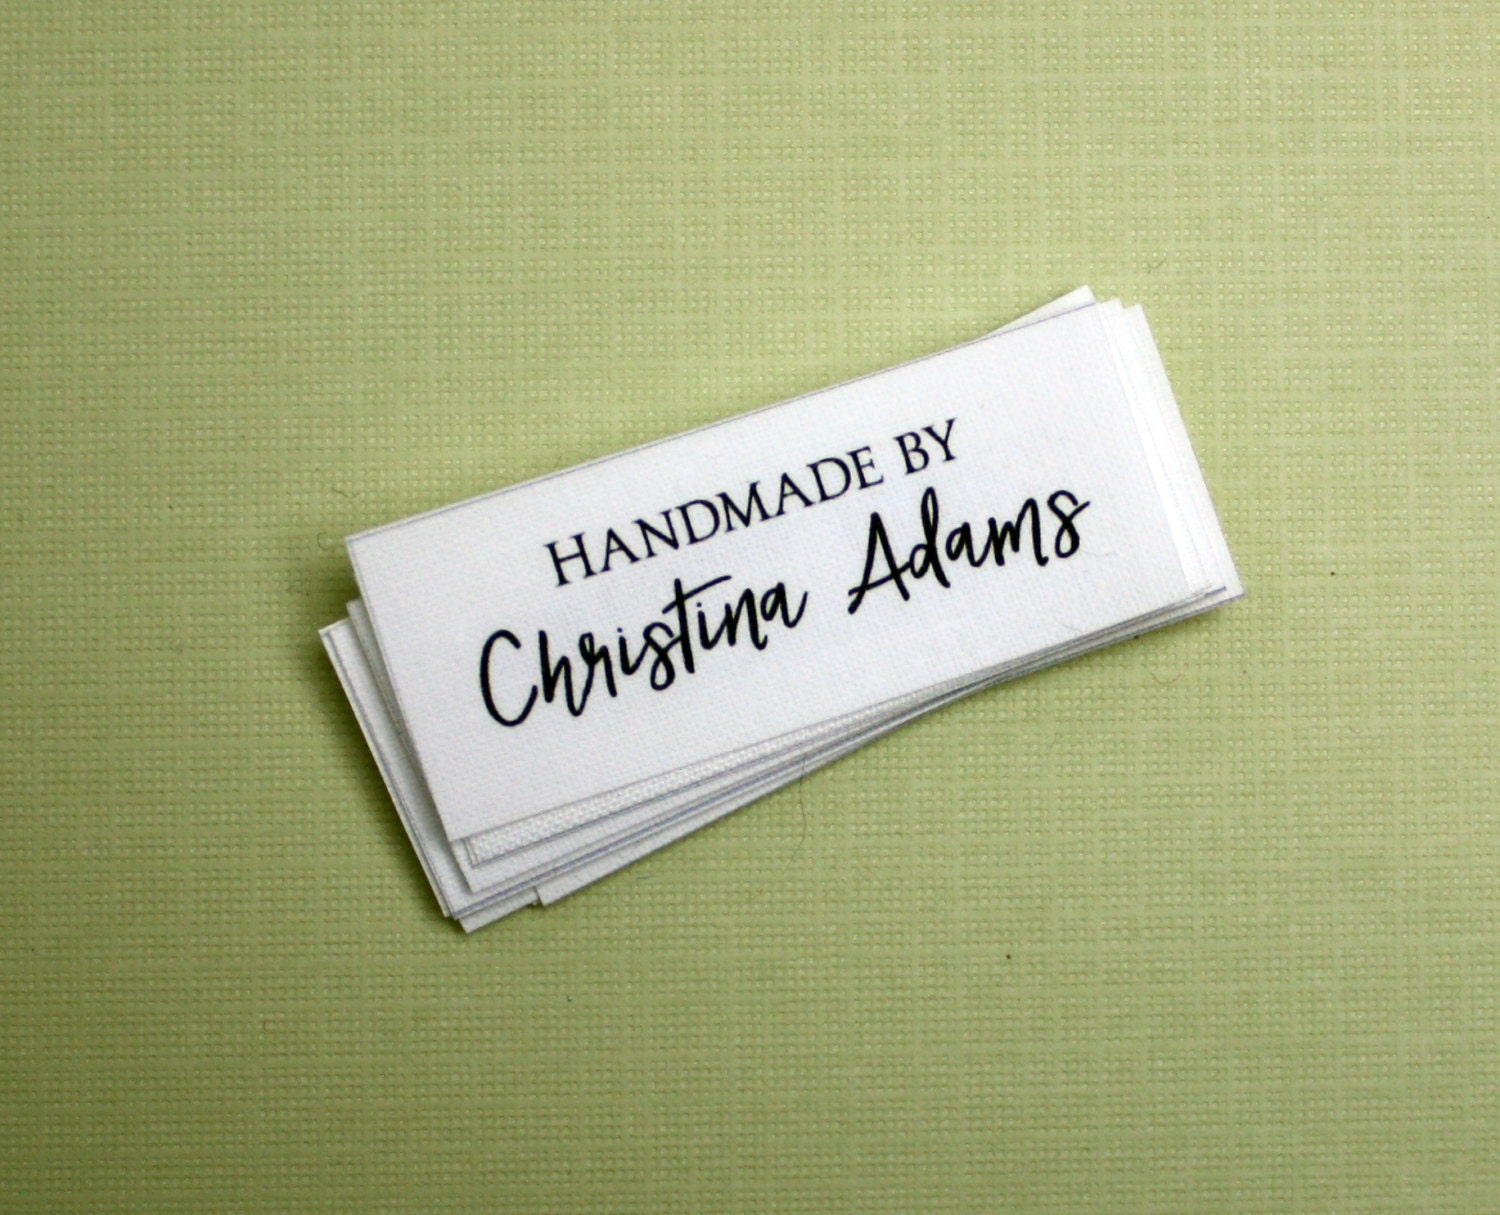 Knitting Labels Personalized : Fabric tags personalized sewing labels quilt